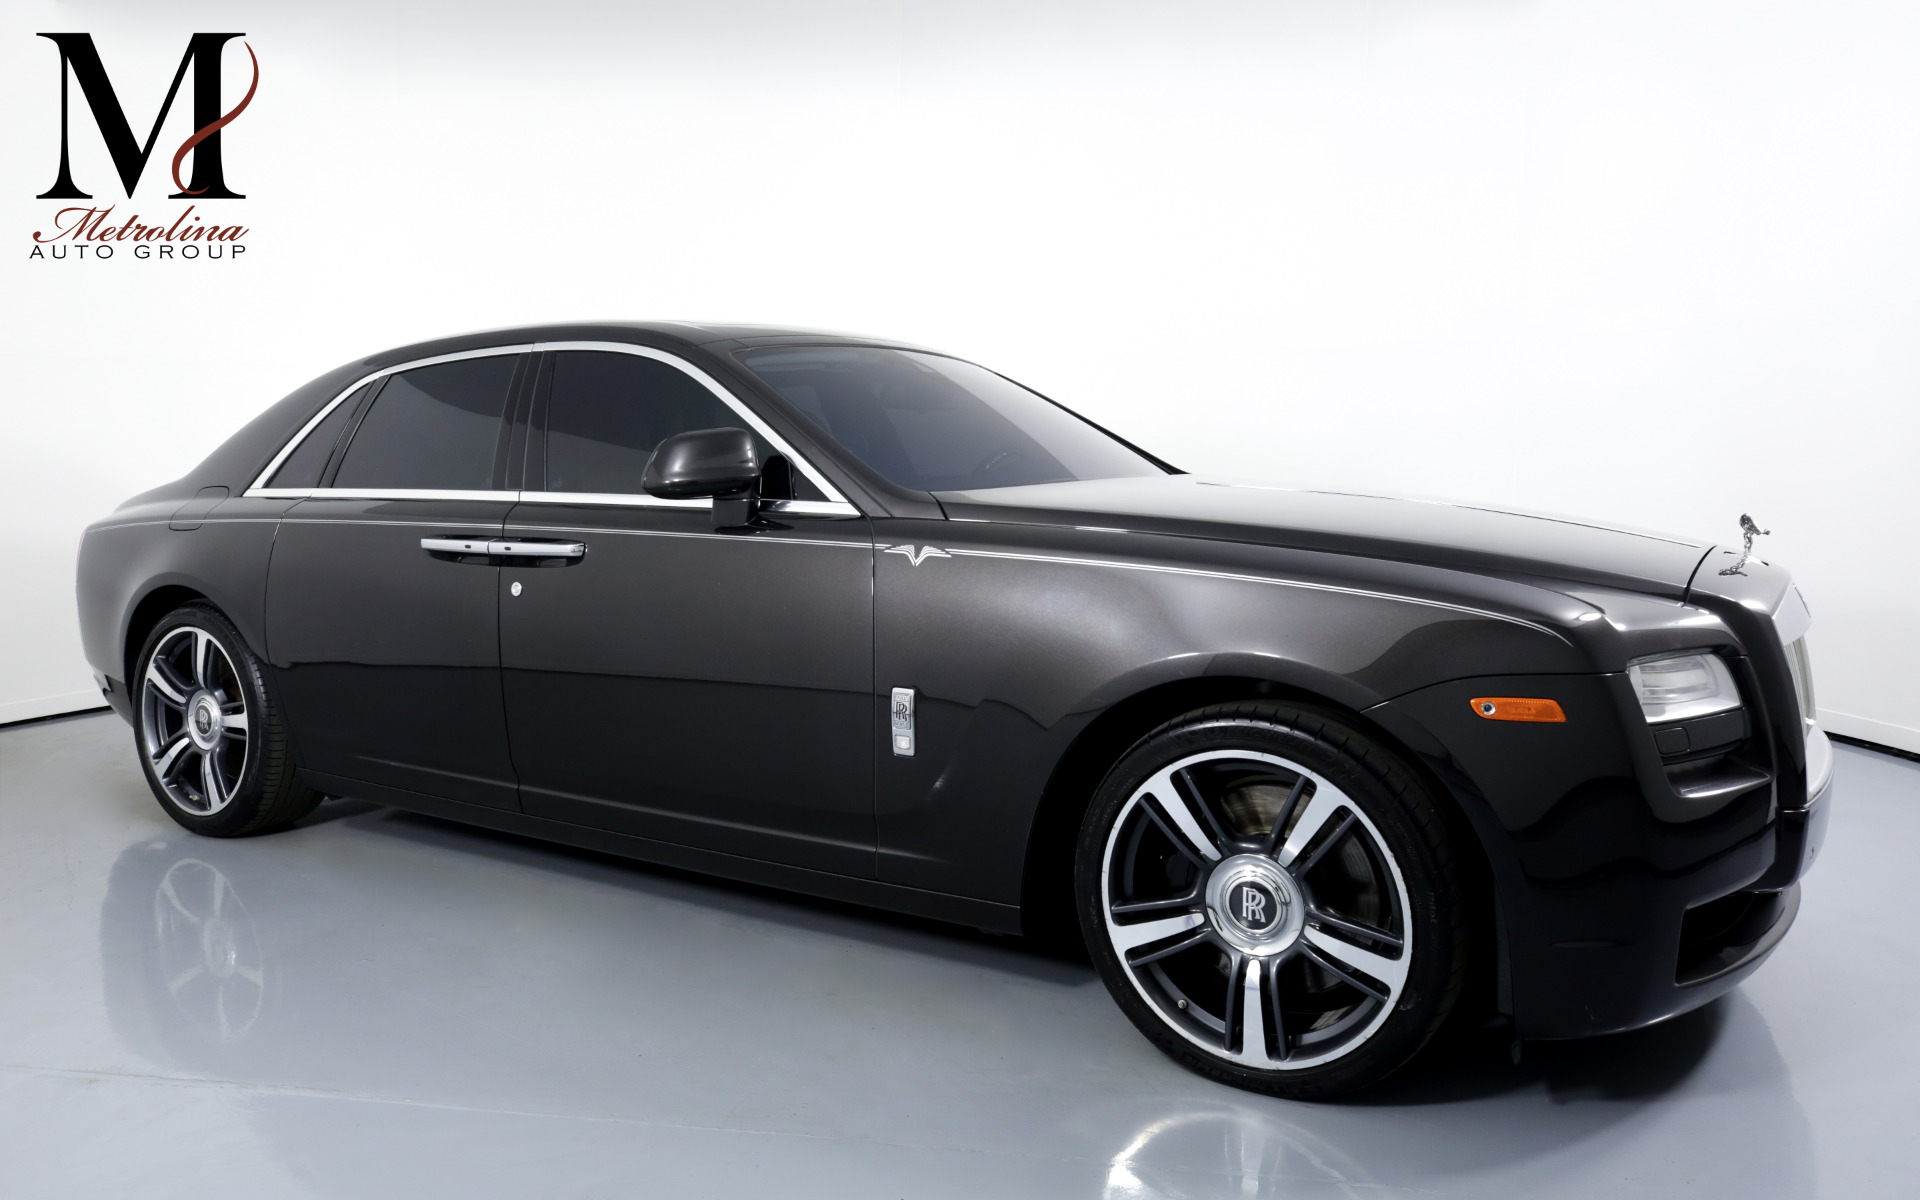 Used 2014 Rolls-Royce Ghost for sale $124,996 at Metrolina Auto Group in Charlotte NC 28217 - 1